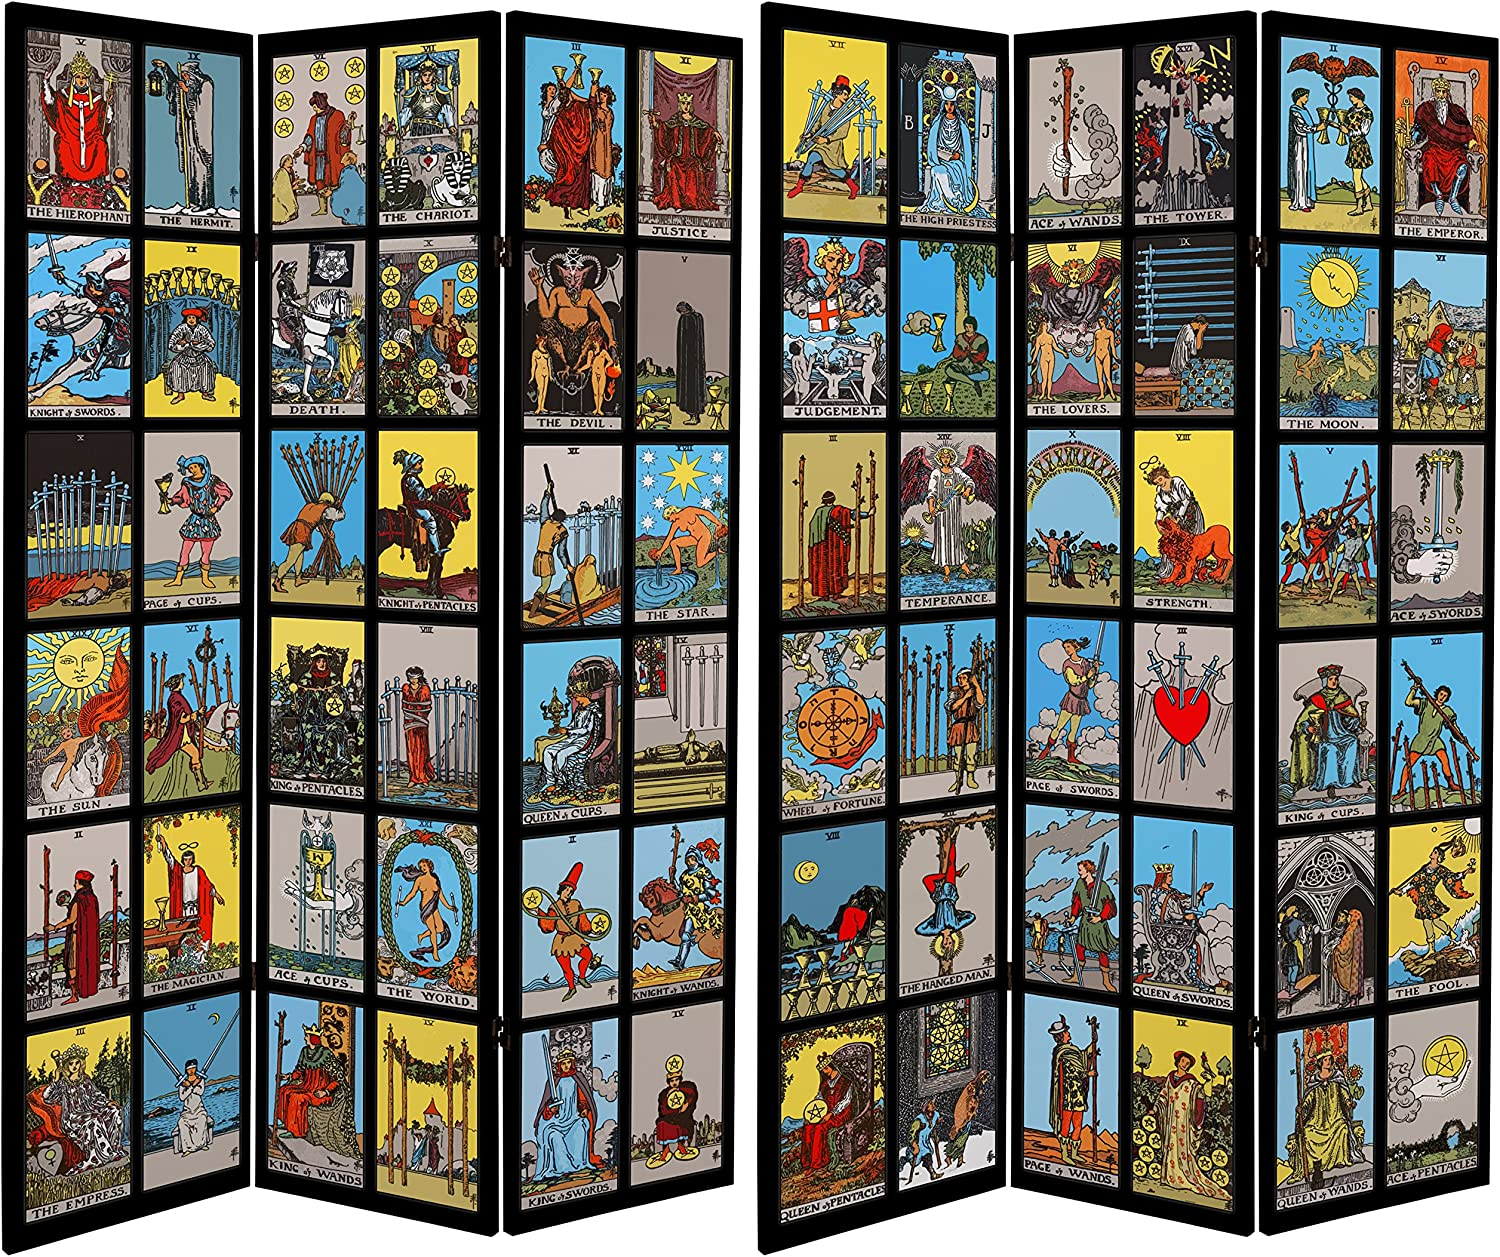 ORIENTAL Choice Furniture Tall Double Sided Tarot Room Canvas Animer and price revision Divider